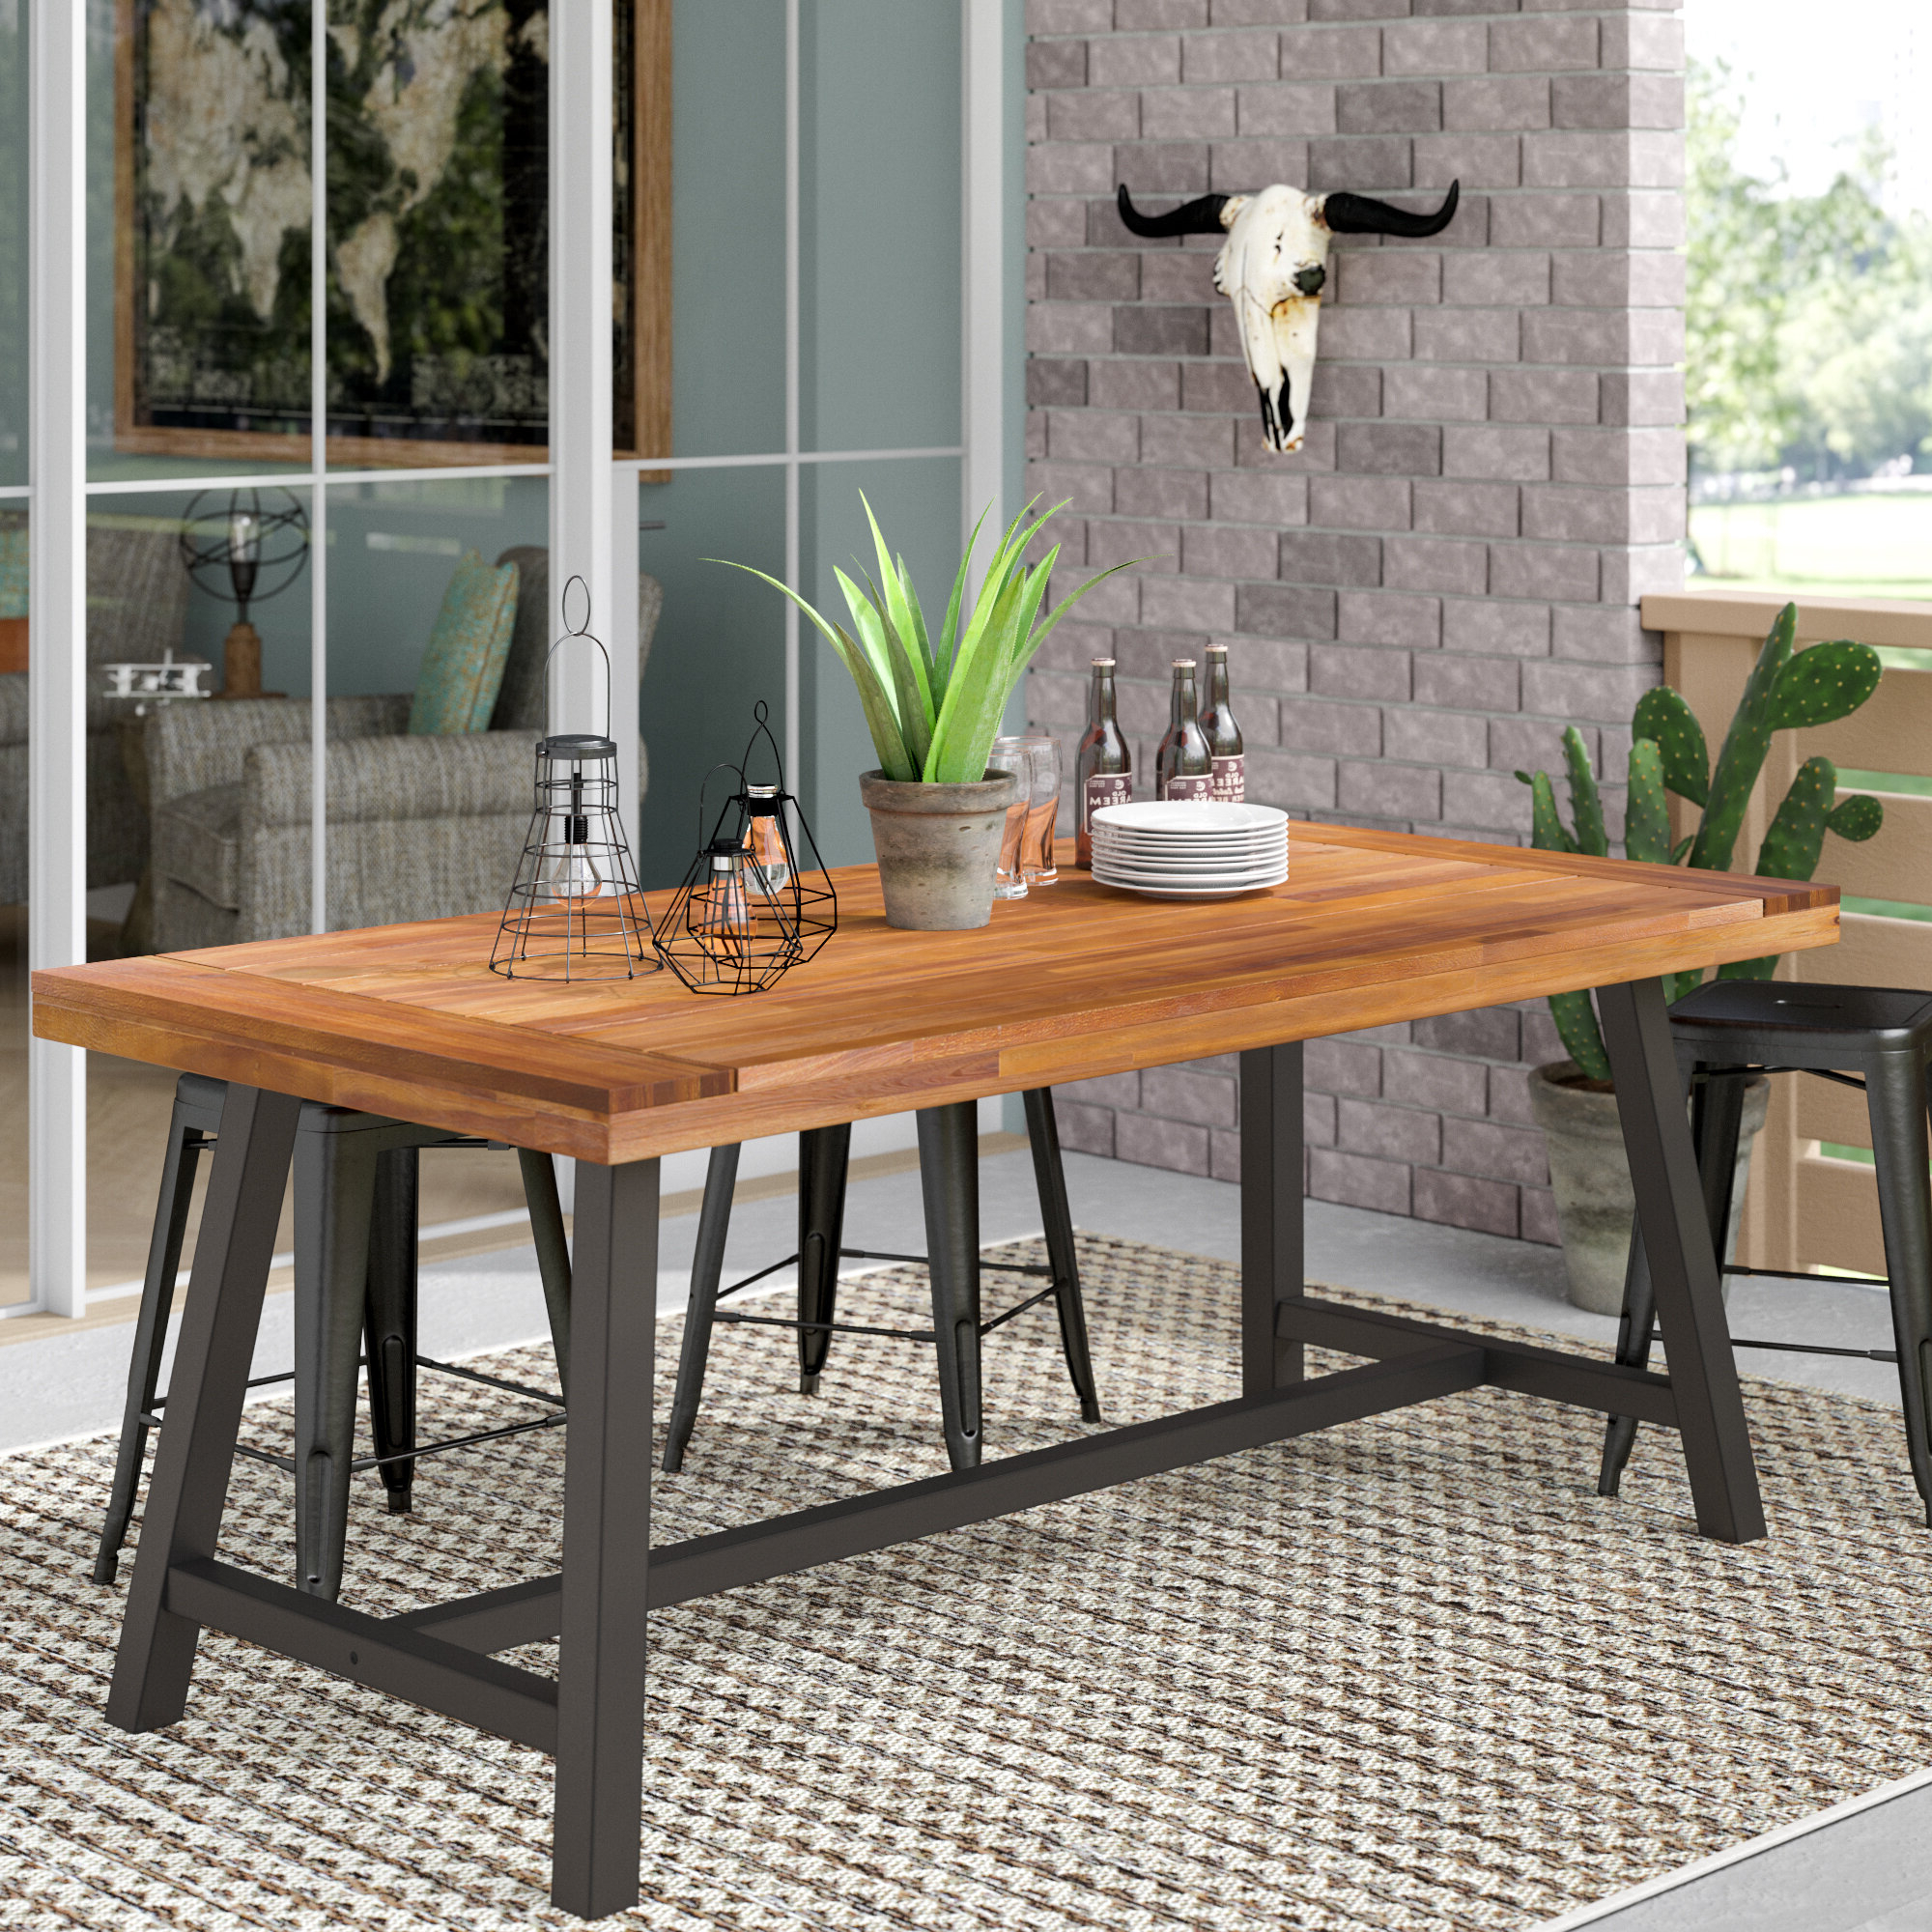 Acacia Top Dining Tables With Metal Legs In Latest 17 Stories Polanco Dining Table & Reviews (View 5 of 25)